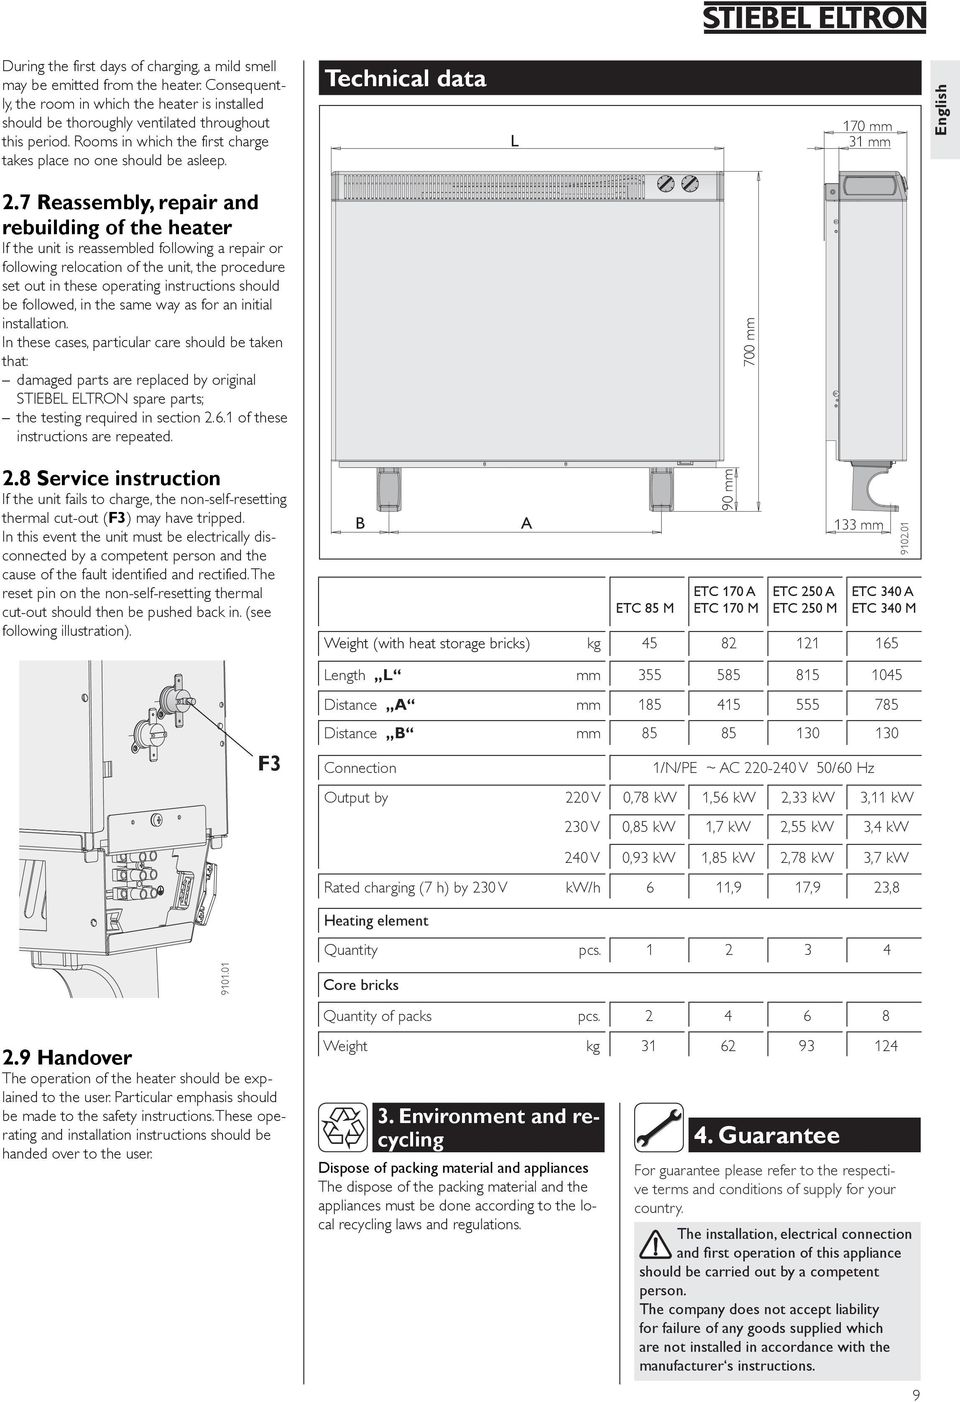 7 Reassembly, repair and rebuilding of the heater If the unit is reassembled following a repair or following relocation of the unit, the procedure set out in these operating instructions should be